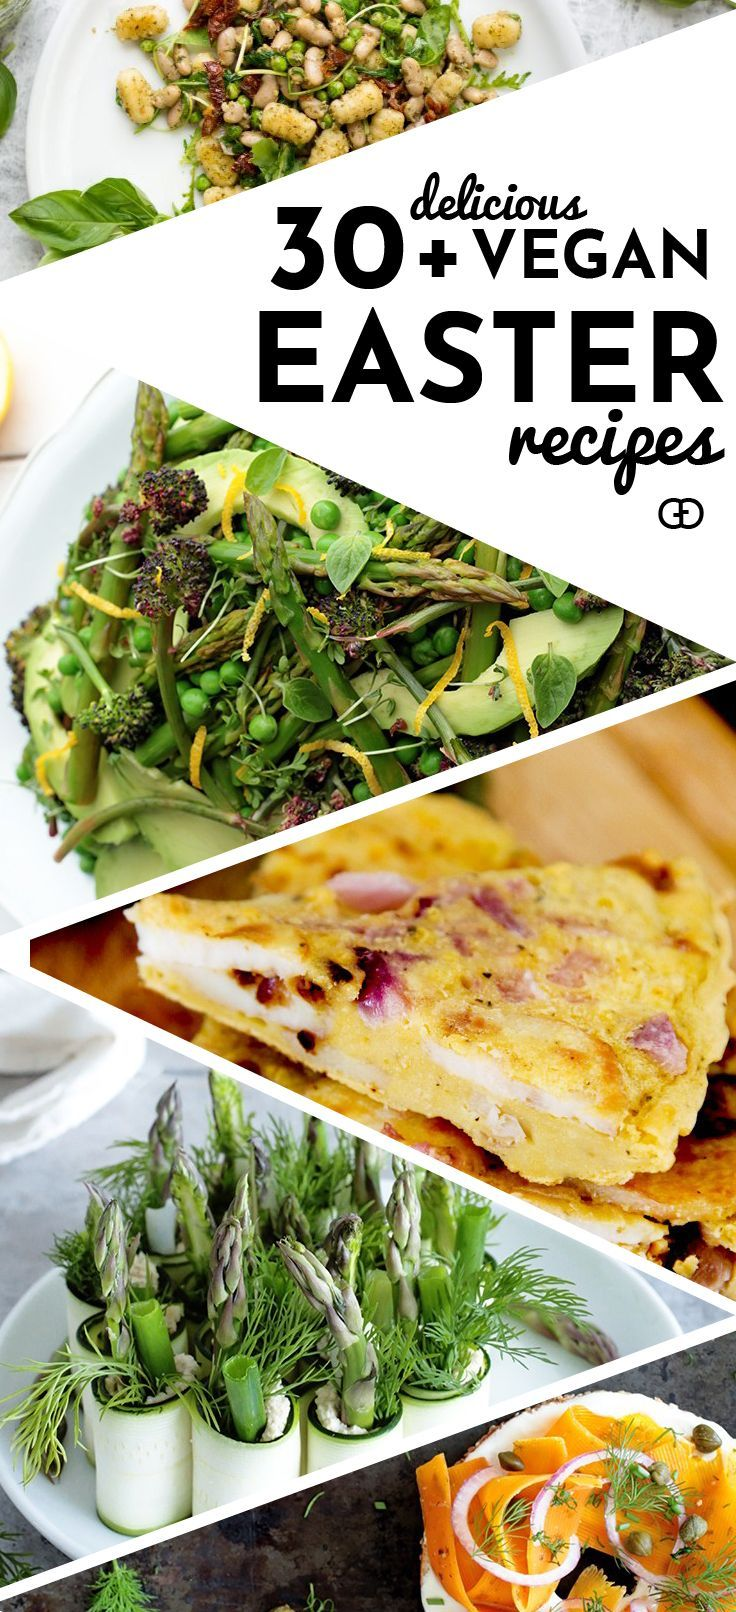 Vegan Easter Recipes Over 30 Eggcellent Vegan Easter Recipes That Are Guaranteed To Impress Th In 2020 Vegan Easter Recipes Vegan Easter Dinner Easter Dinner Recipes